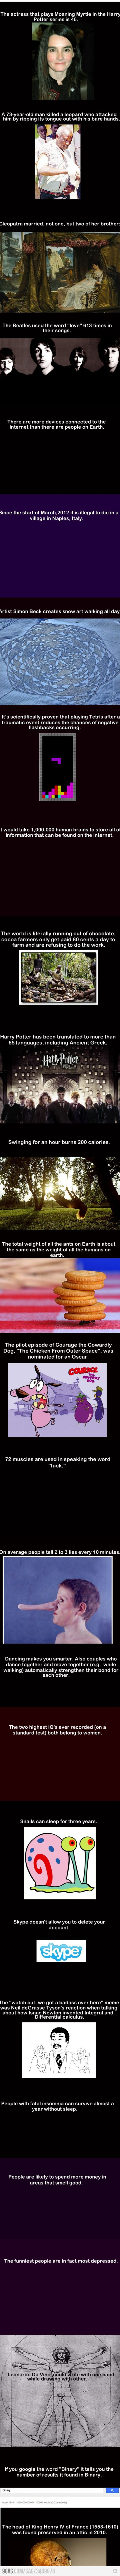 27 Cool Facts About Random Things You Need To Know